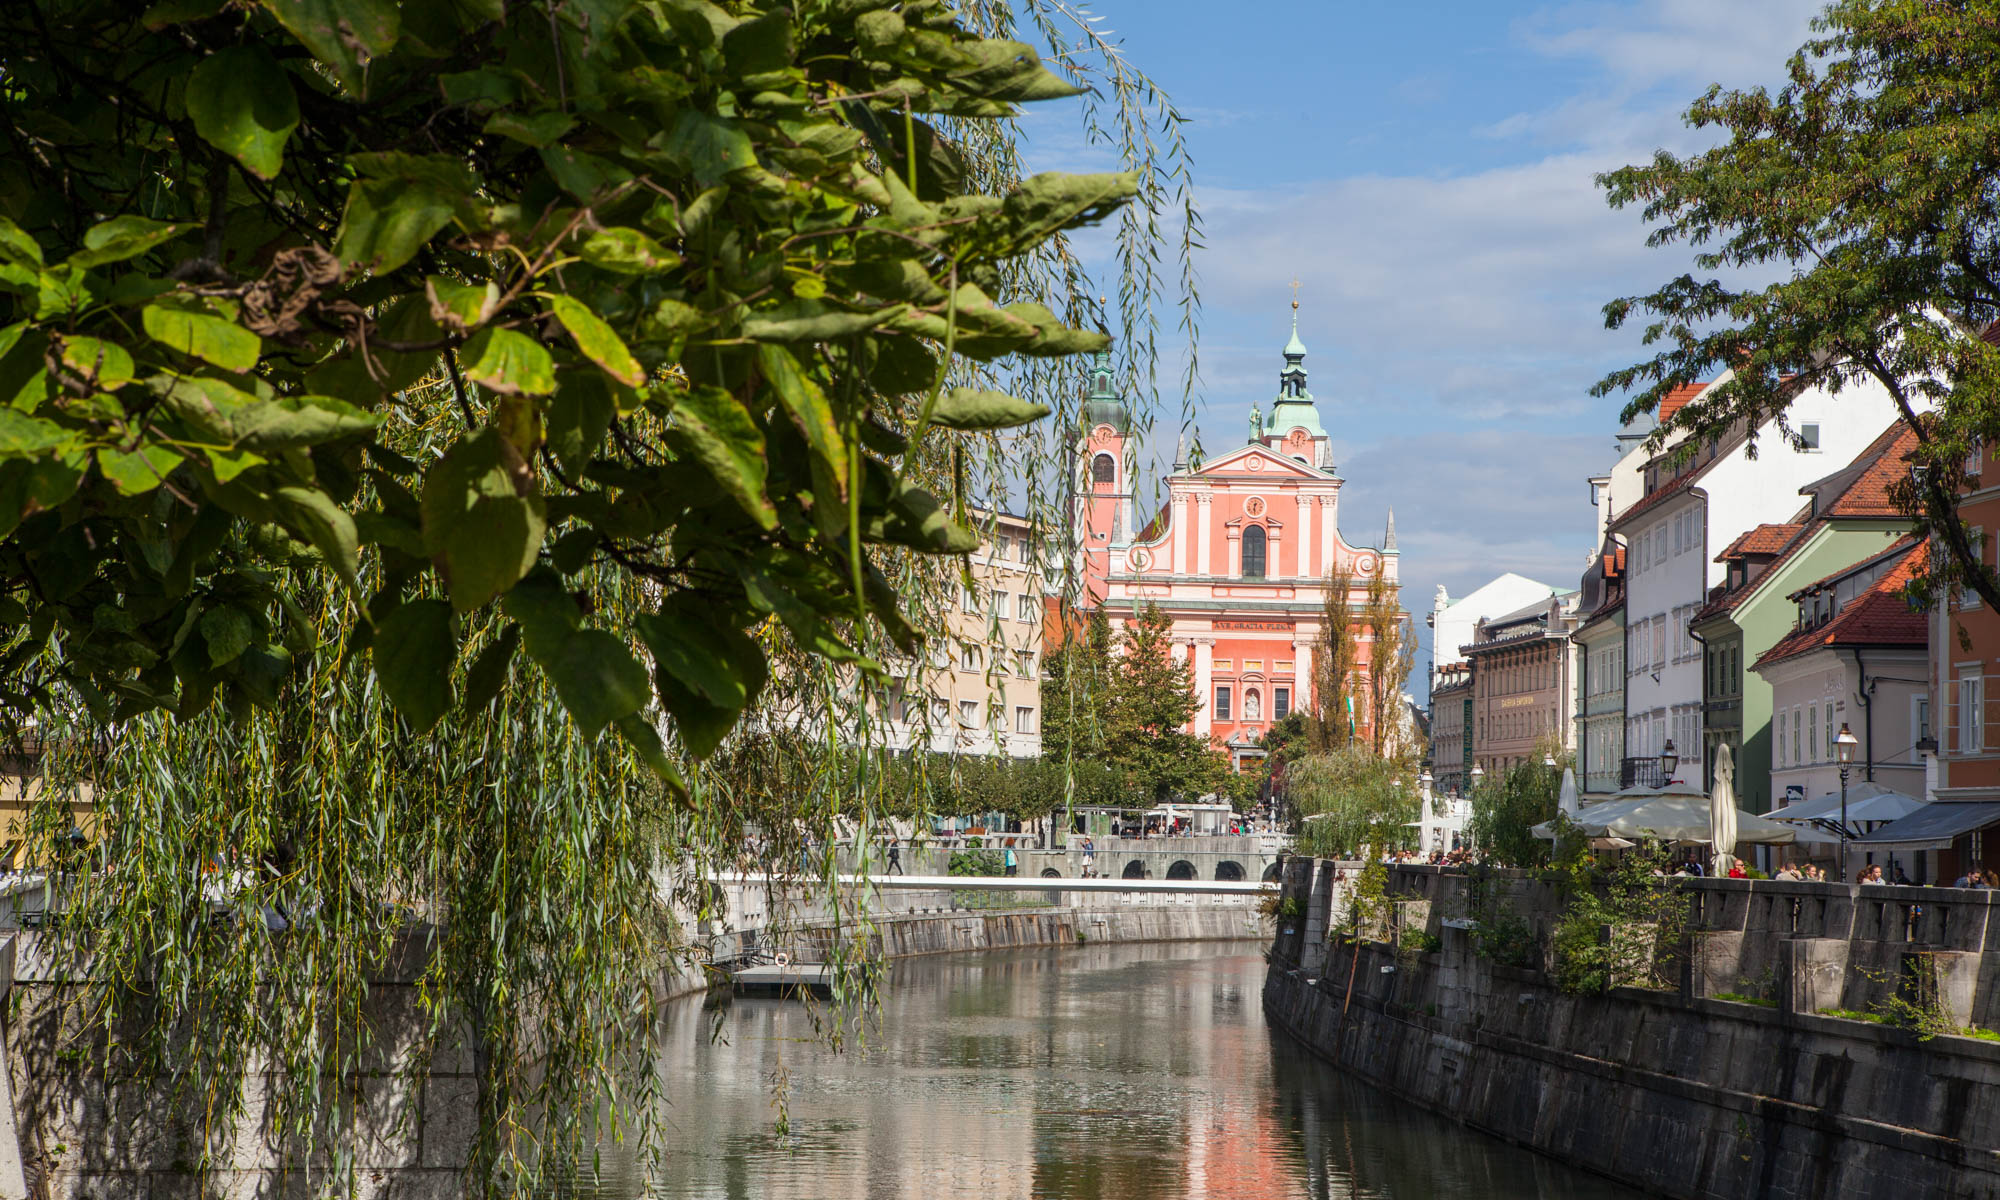 View of a pink building along the river in Ljubljana, Slovenia with green foliage